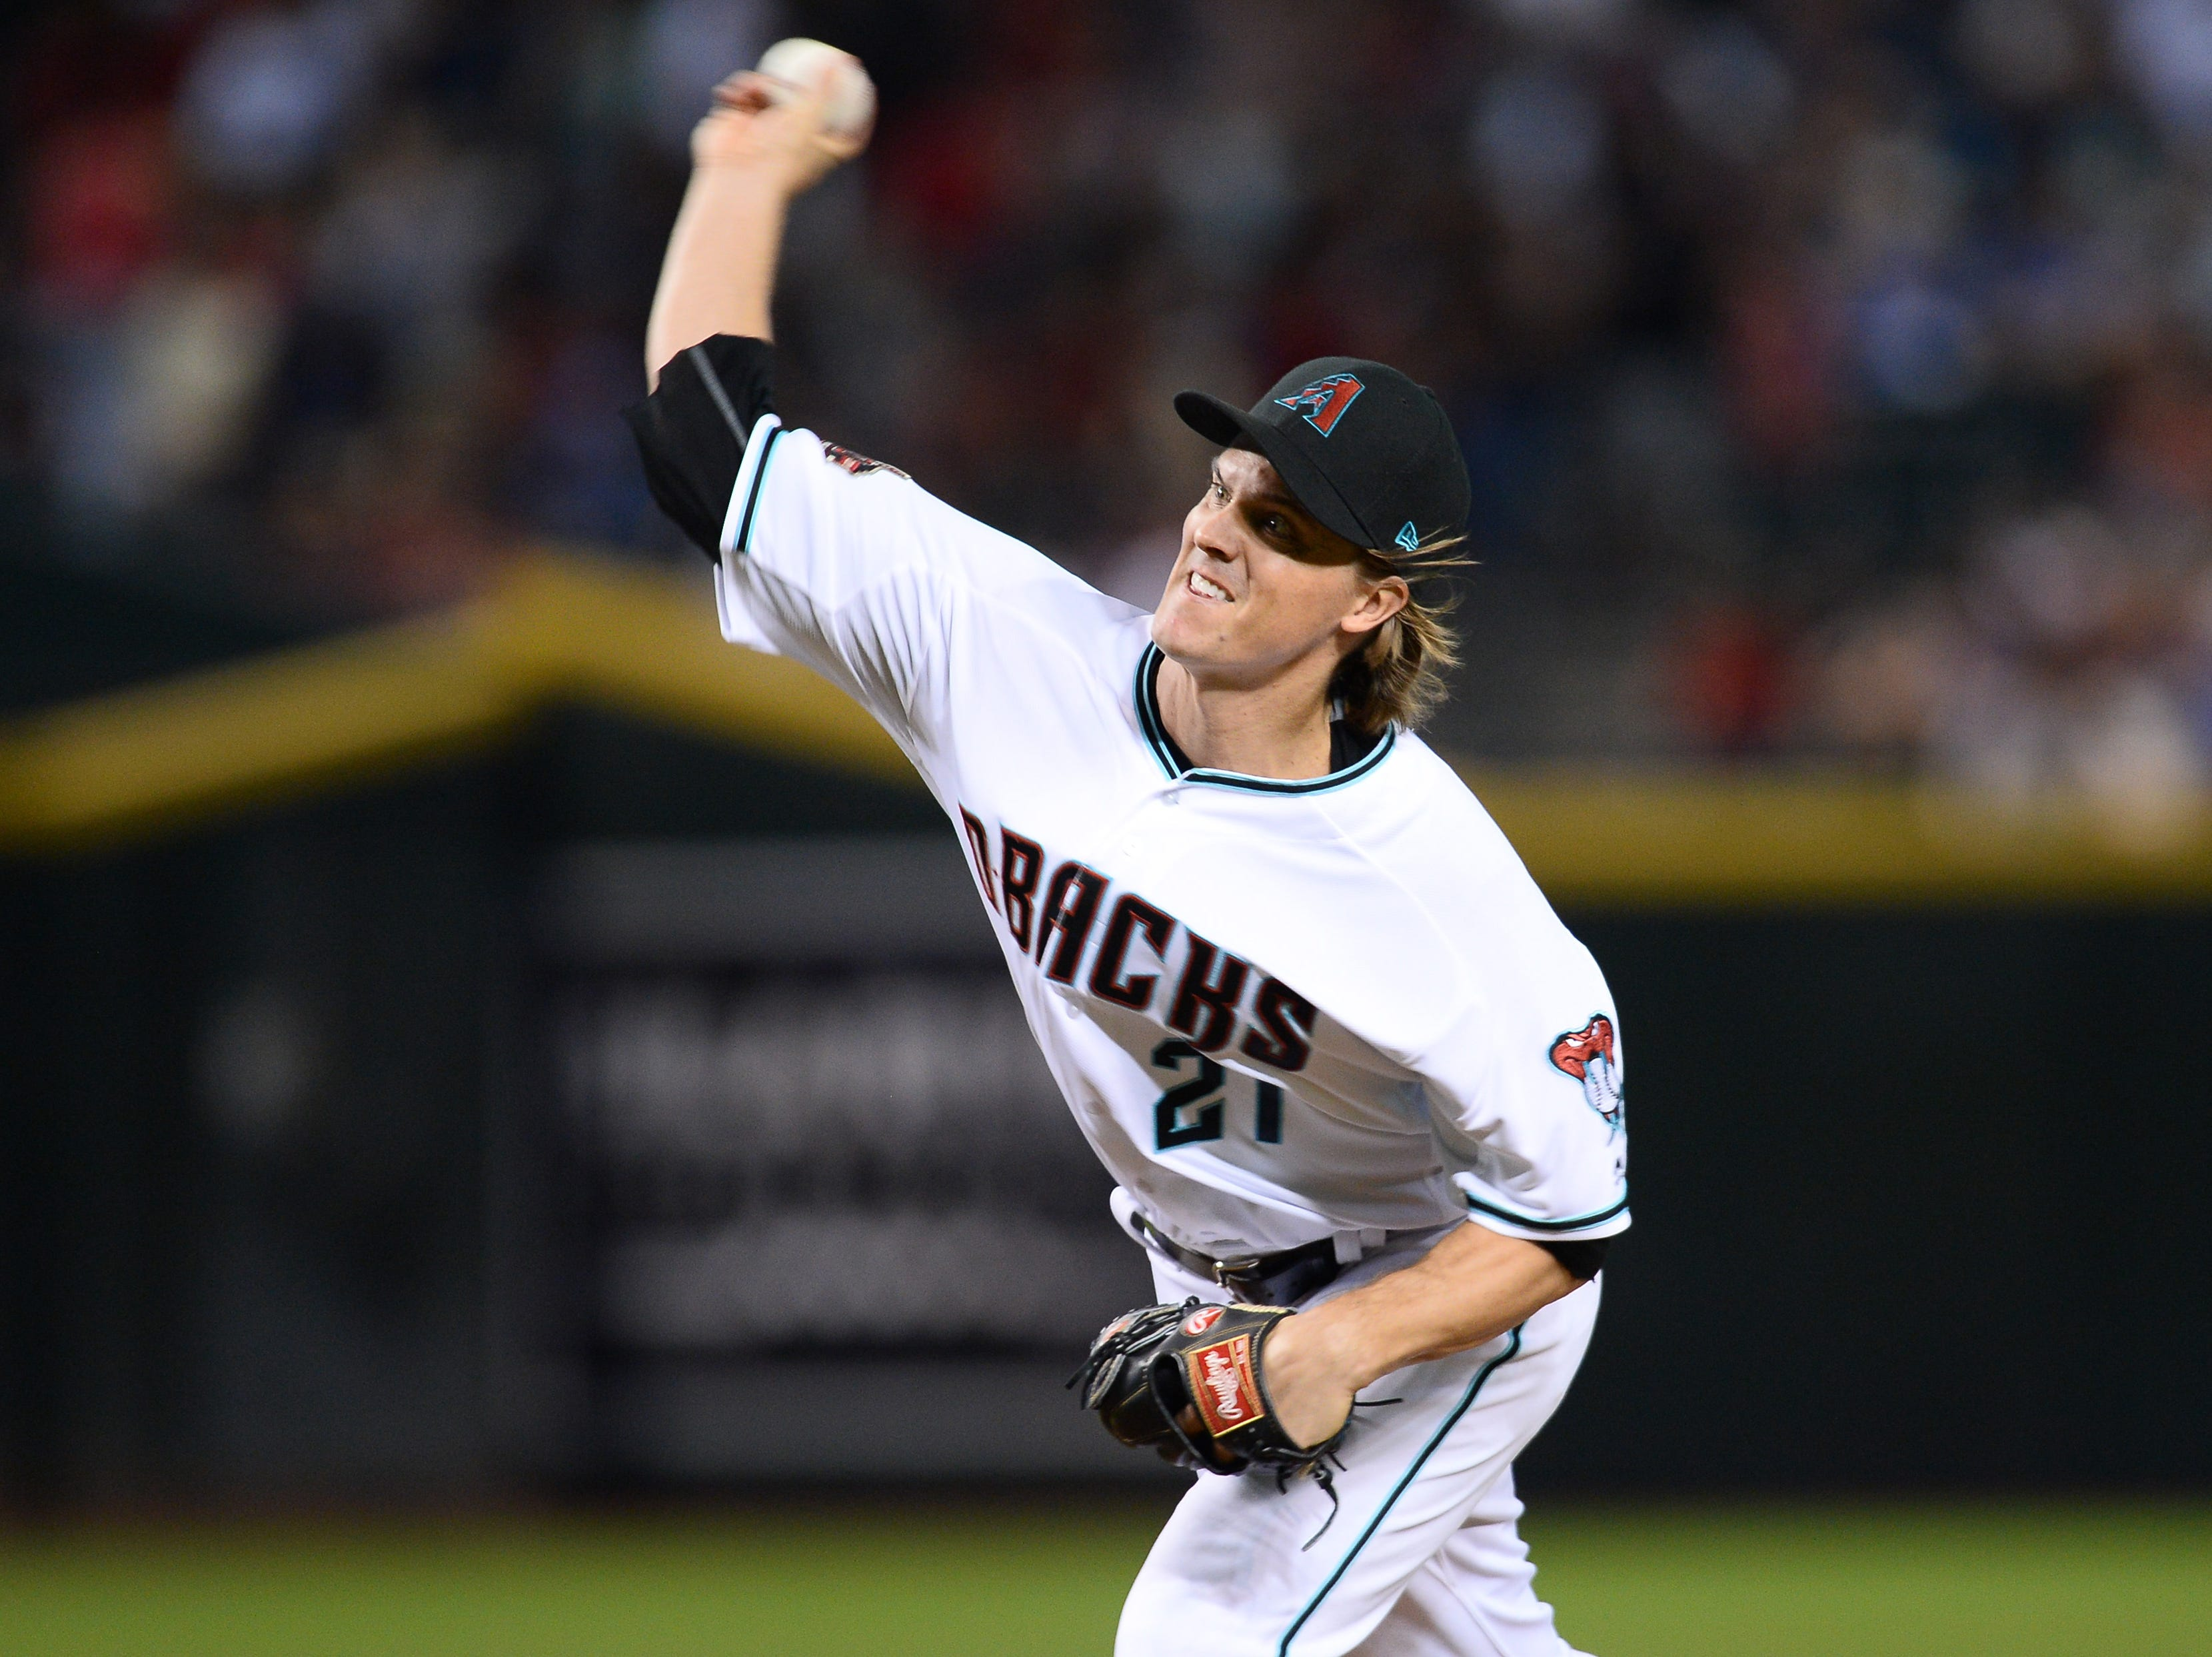 Sep 21, 2018; Phoenix, AZ, USA; Arizona Diamondbacks starting pitcher Zack Greinke (21) pitches against the Colorado Rockies during the first inning at Chase Field.